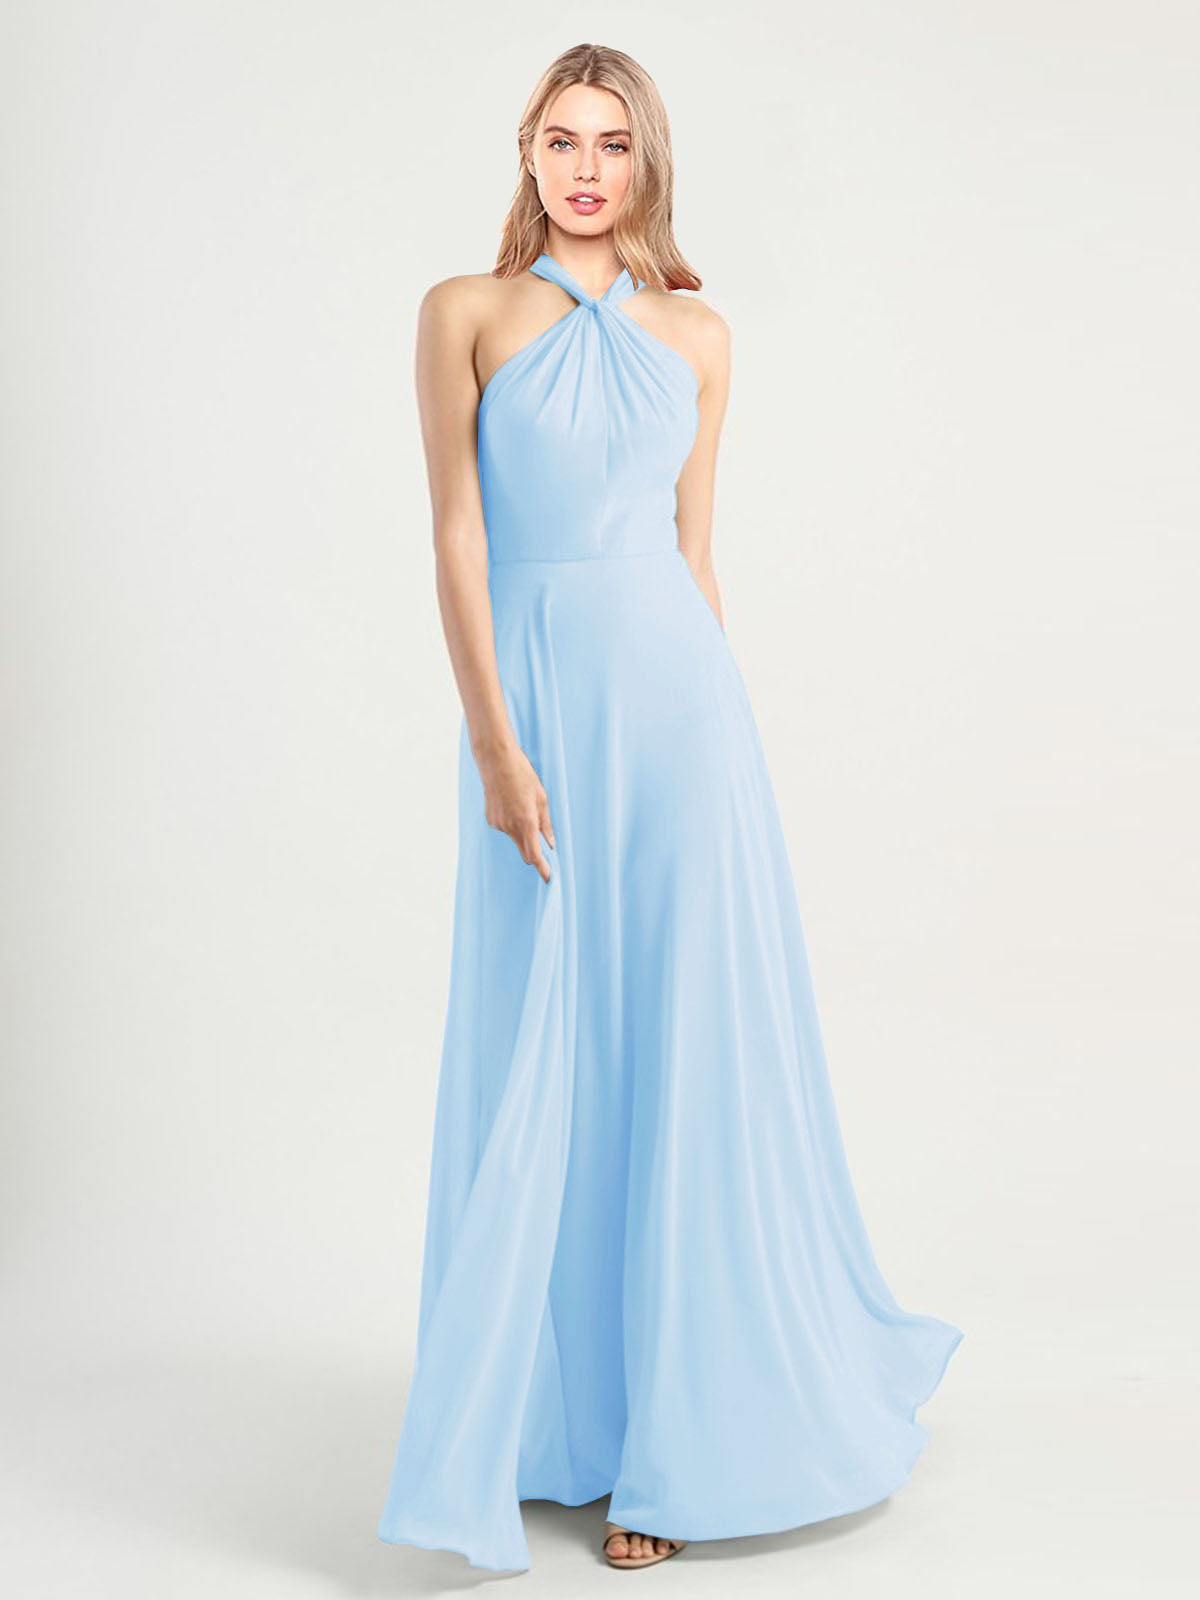 Long A-Line High Neck, Halter Sleeveless Light Sky Blue Chiffon Bridesmaid Dress Yoli